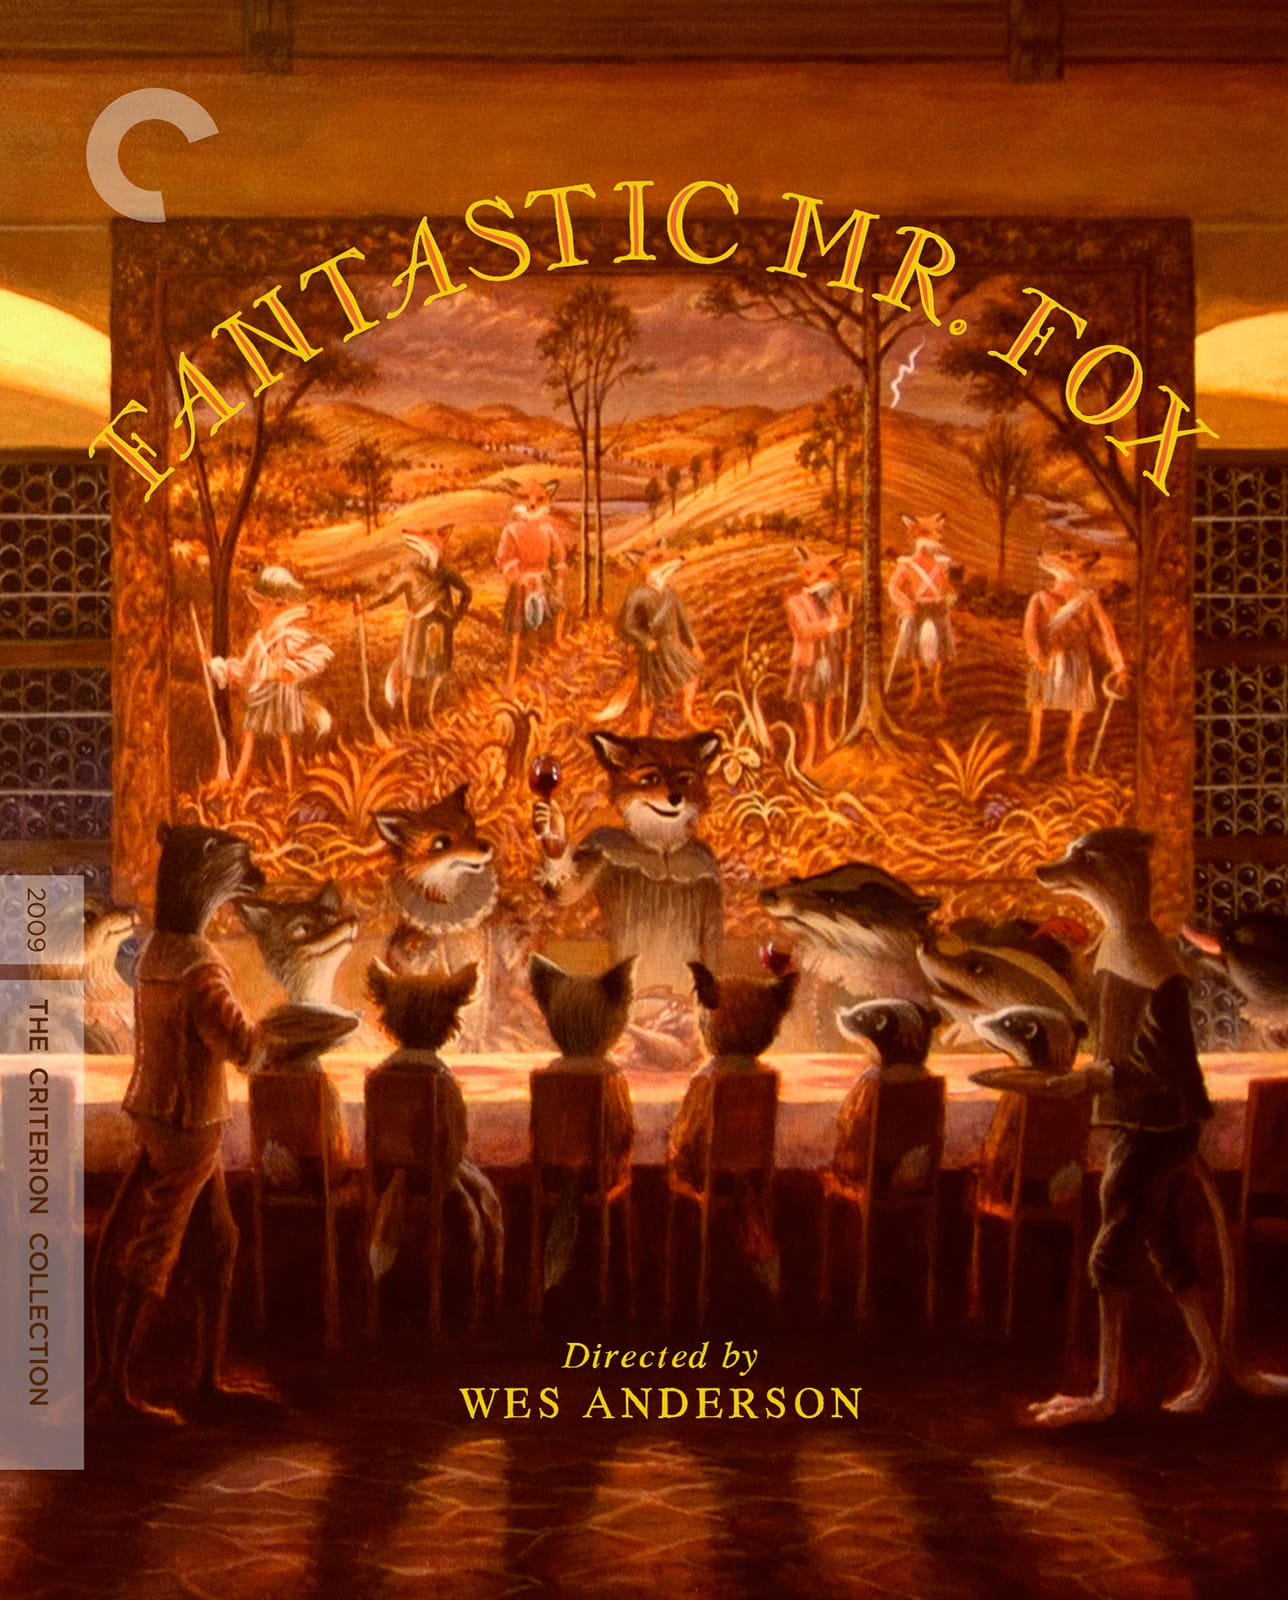 Fantastic Mr Fox 2009 The Criterion Collection